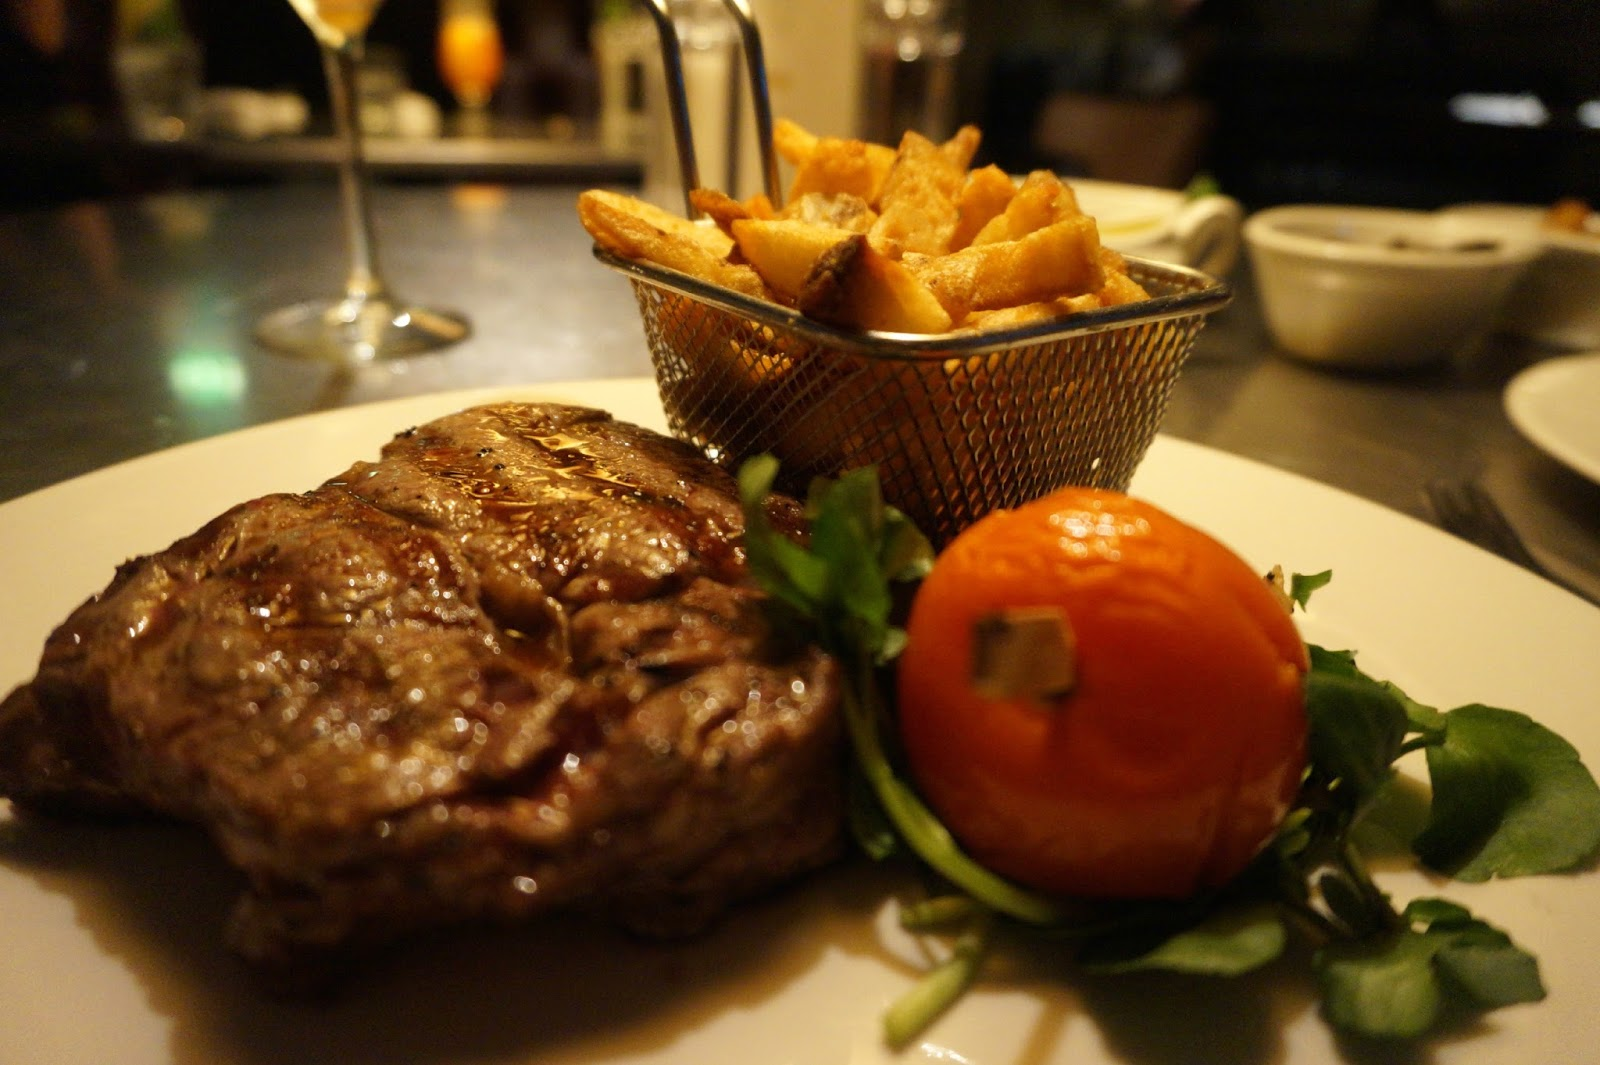 close up of steak with chips